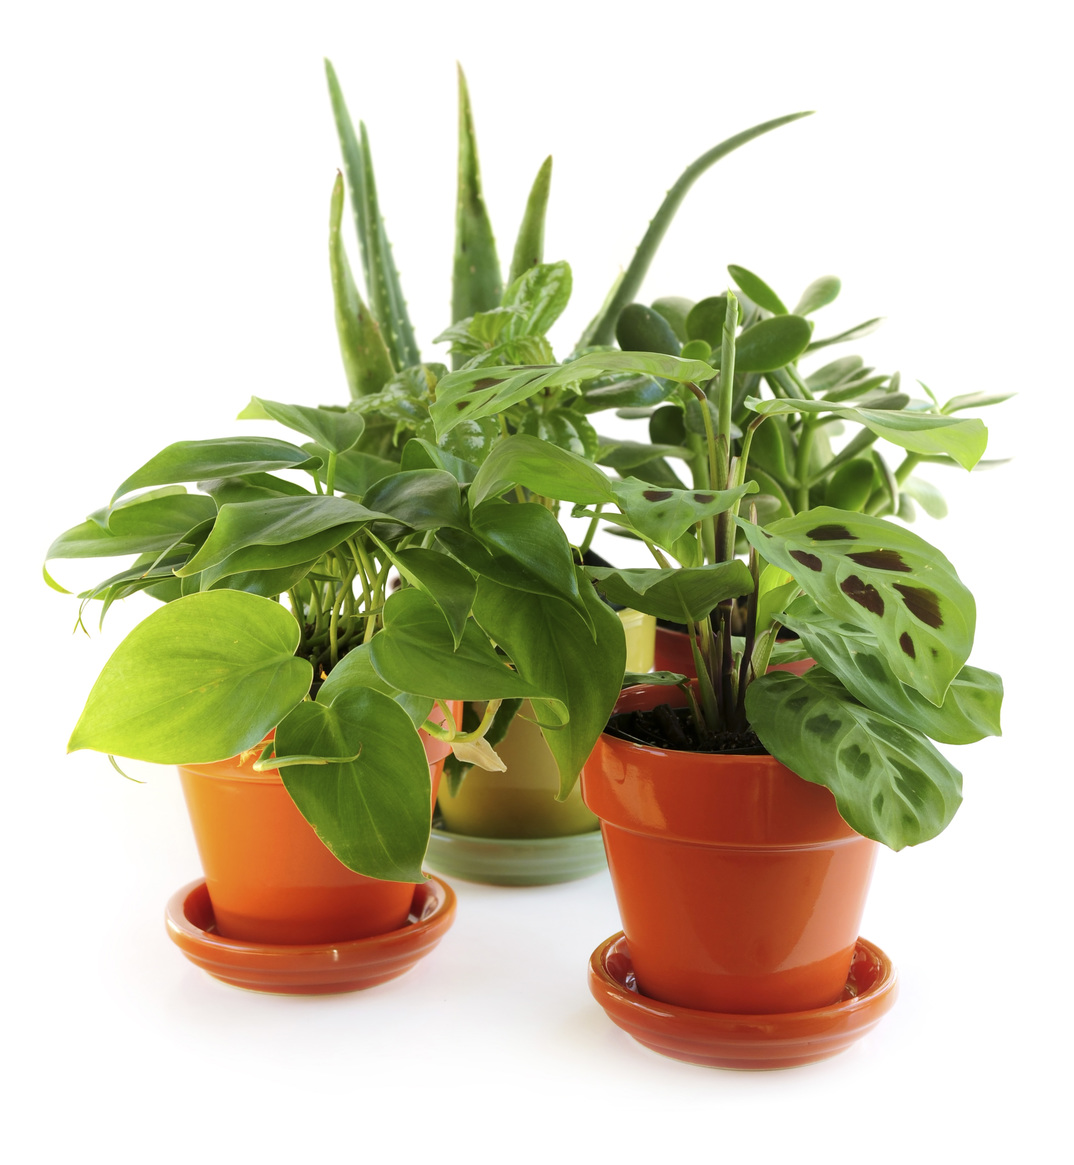 3 Indoor Plants To Purify The Air